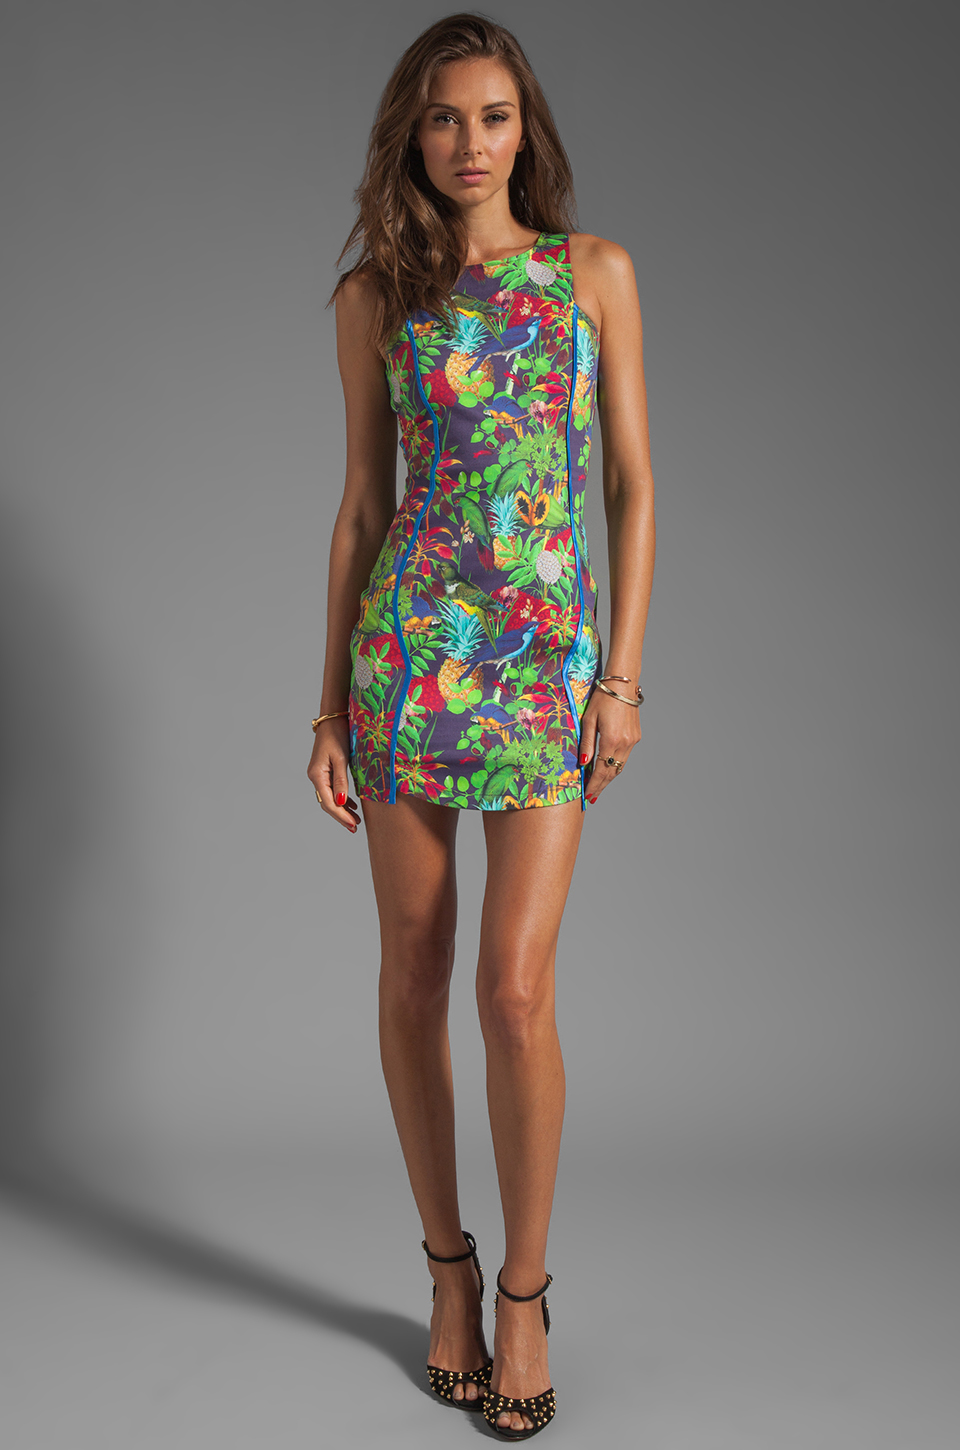 Maurie & Eve Lotus Dress with Ribbon Bind in Paradise